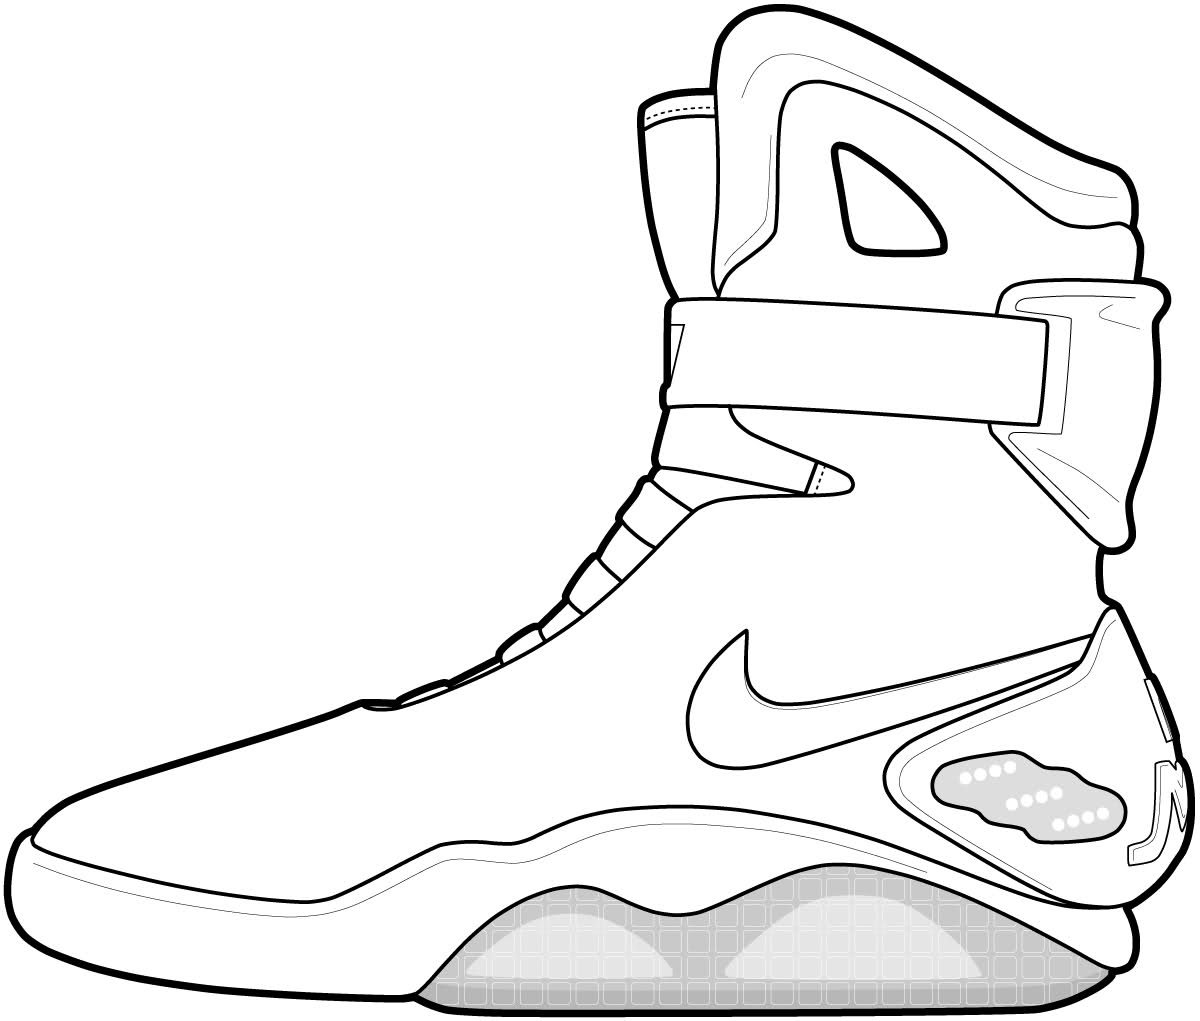 coloring shoes basketball shoe coloring pages download and print for free shoes coloring